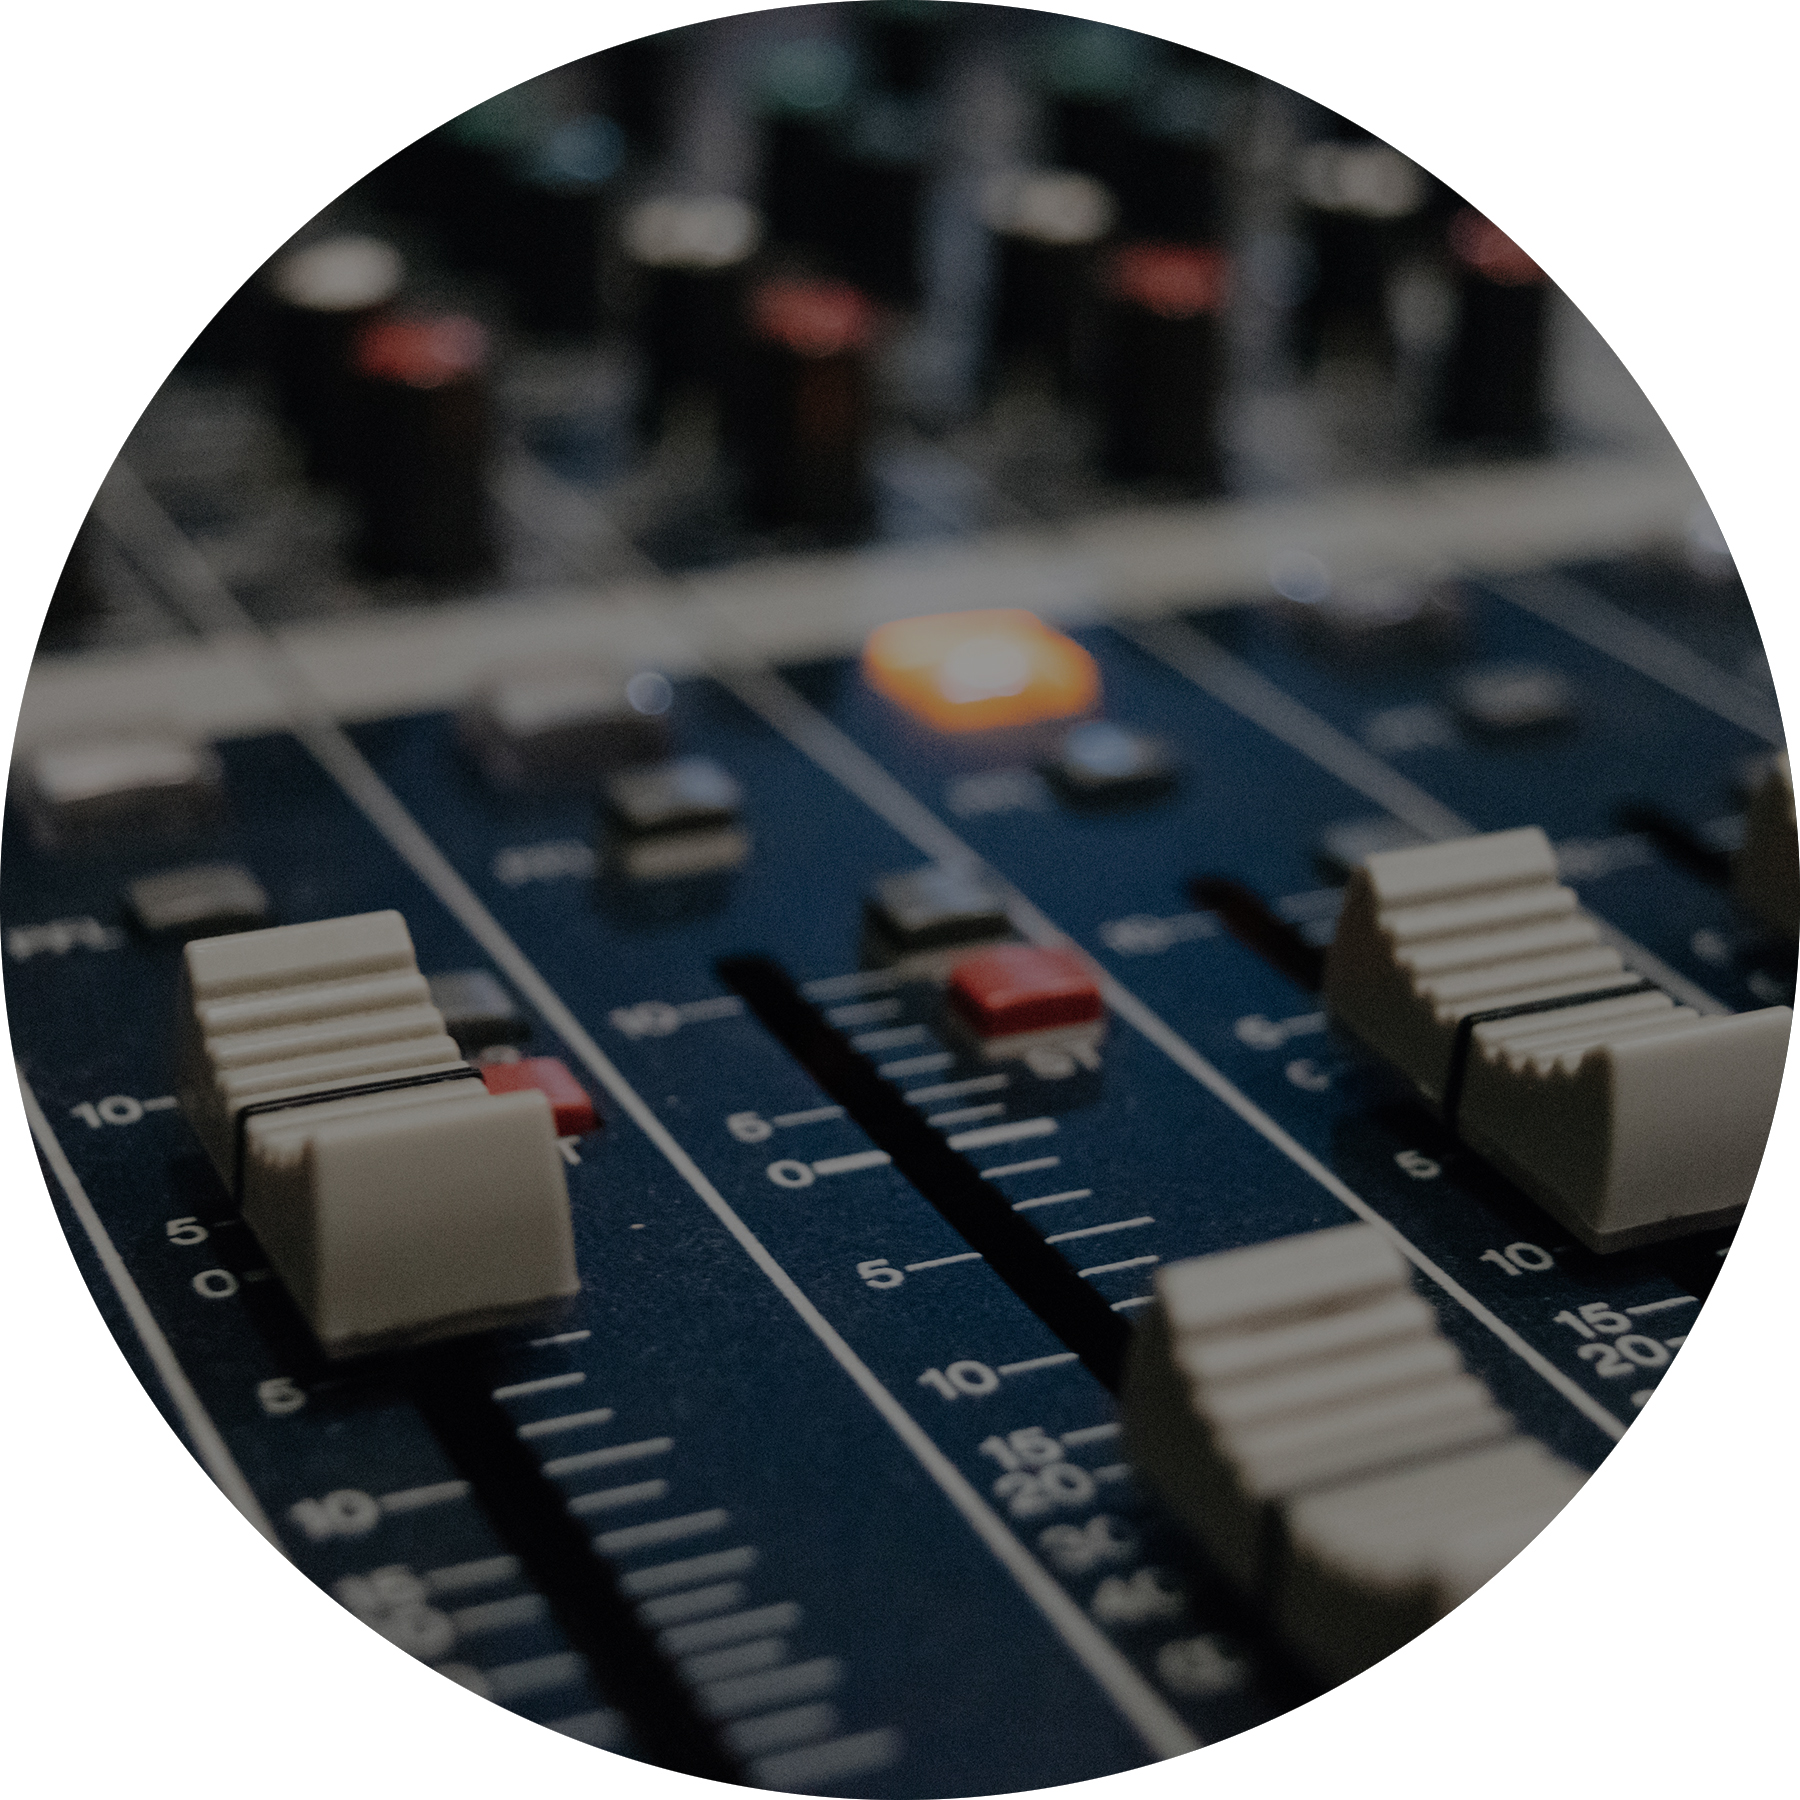 BESPOKE MUSIC - Original music created especially for your content.